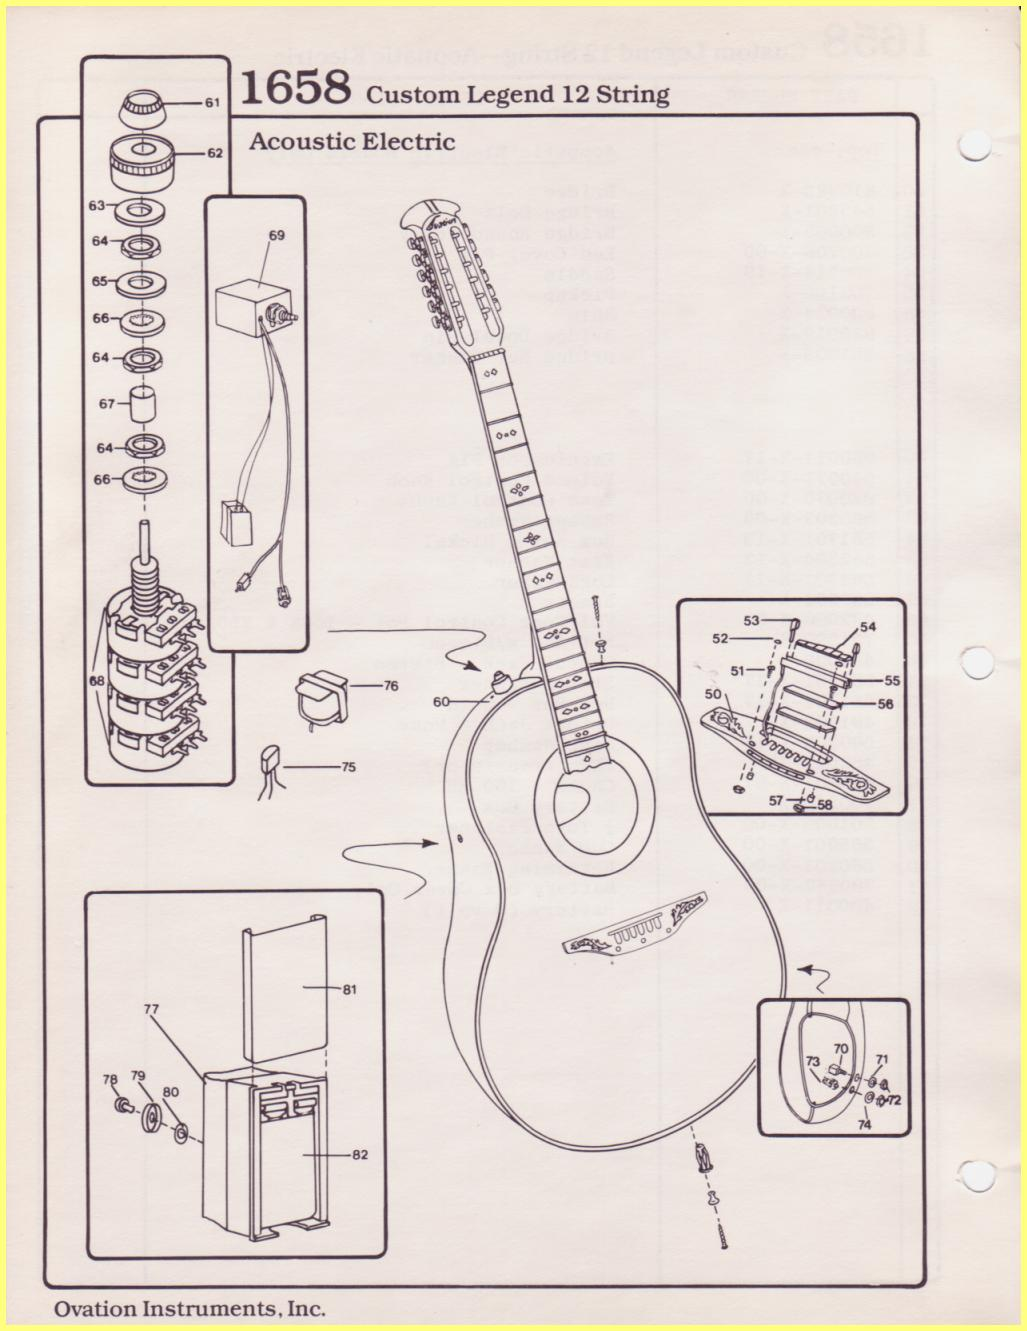 Ovation Parts Catalog Electric Guitar Strings Diagram Clegend 12